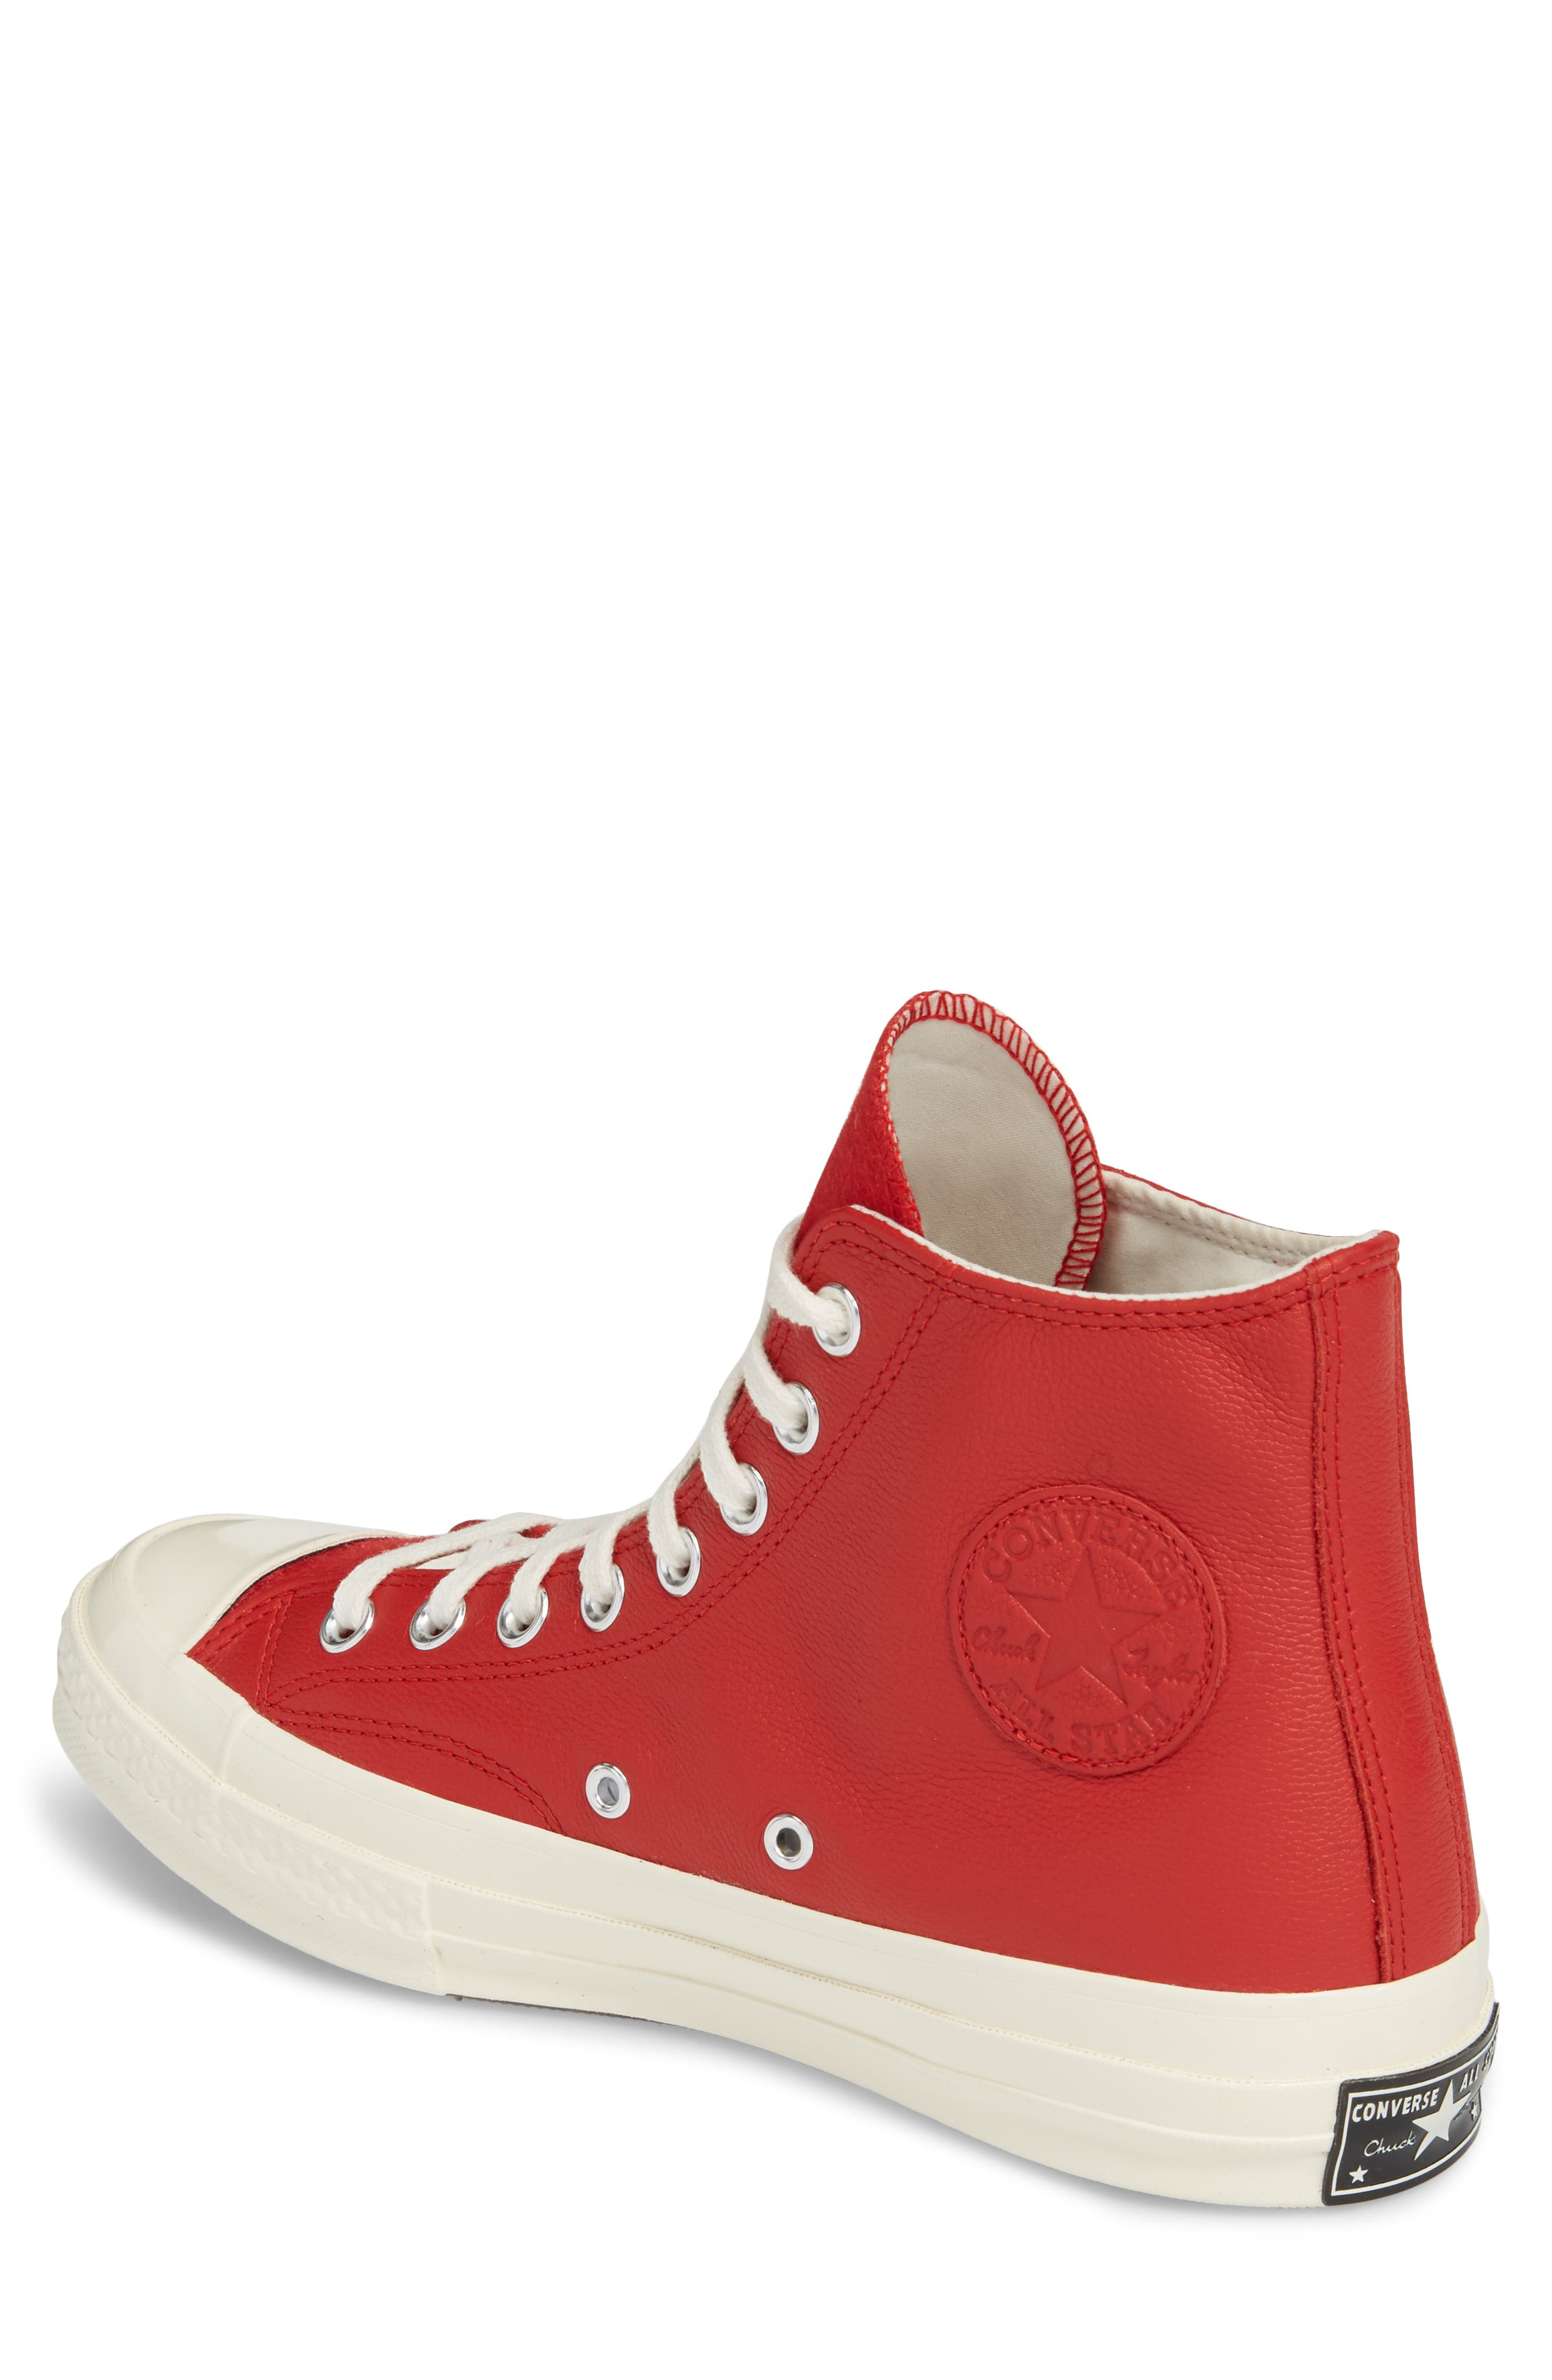 Chuck Taylor<sup>®</sup> All Star<sup>®</sup> Wordmark High Top Sneaker,                             Alternate thumbnail 2, color,                             Enamel Red Leather